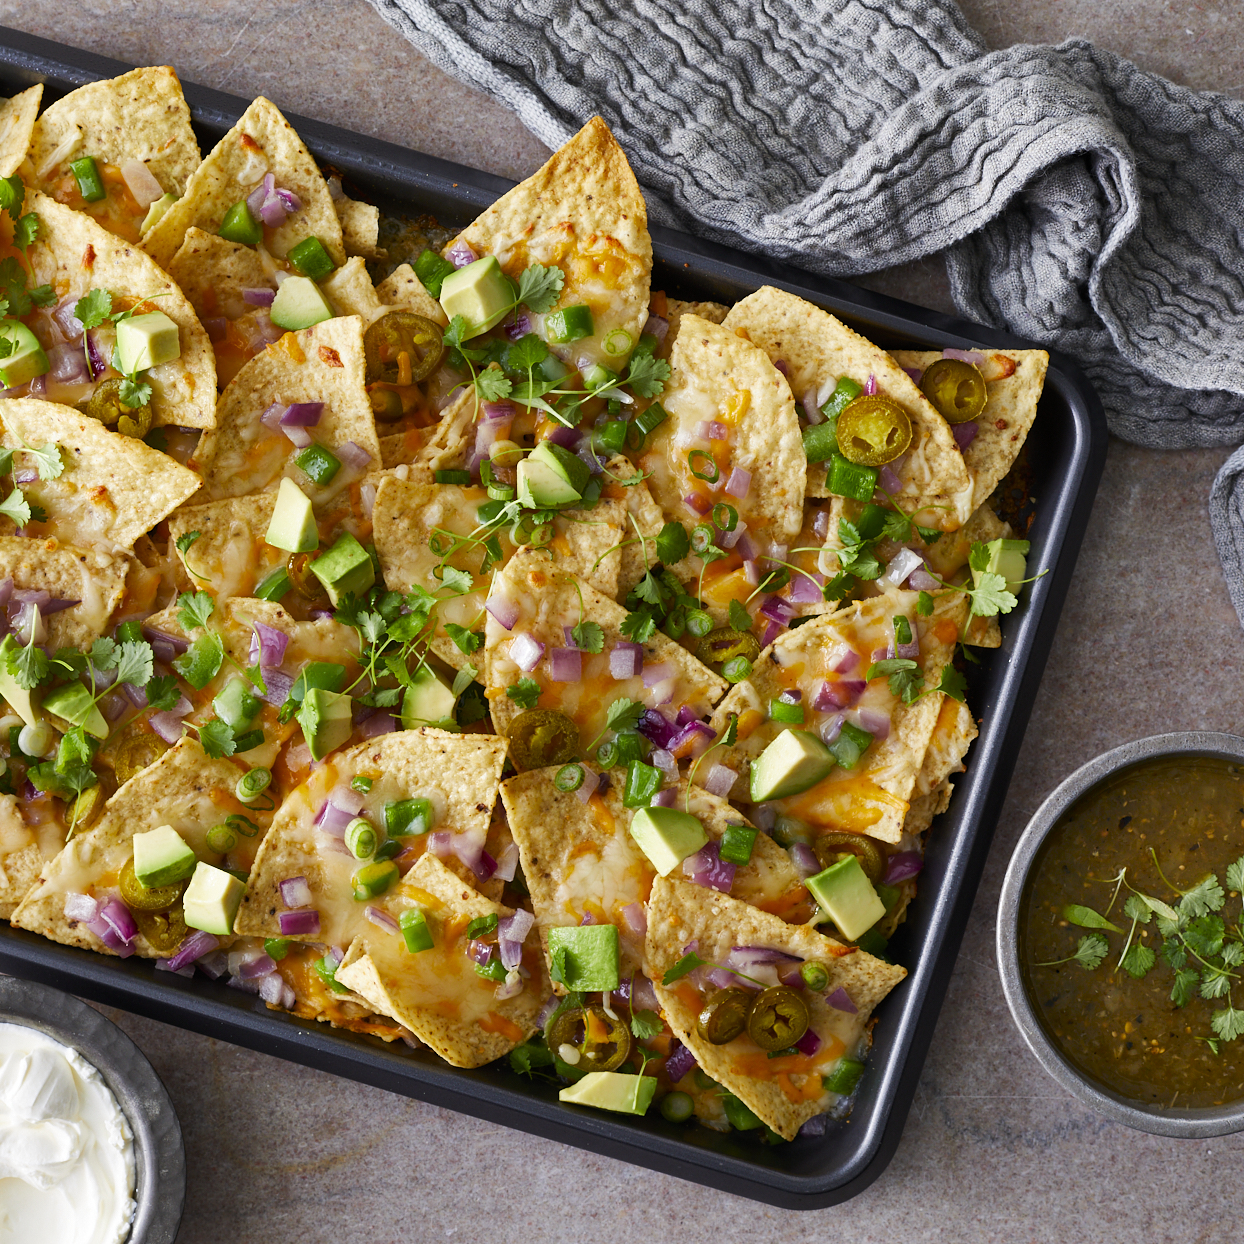 "This quick and easy Super Bowl recipe has been referred to as ""the best nachos people have ever had."" With easy-to-find ingredients, an optional pop of tang and spice from the pickled jalapeños, and the salsa verde and sour cream for serving, we think it's earned its title! Source: EatingWell.com, January 2020"